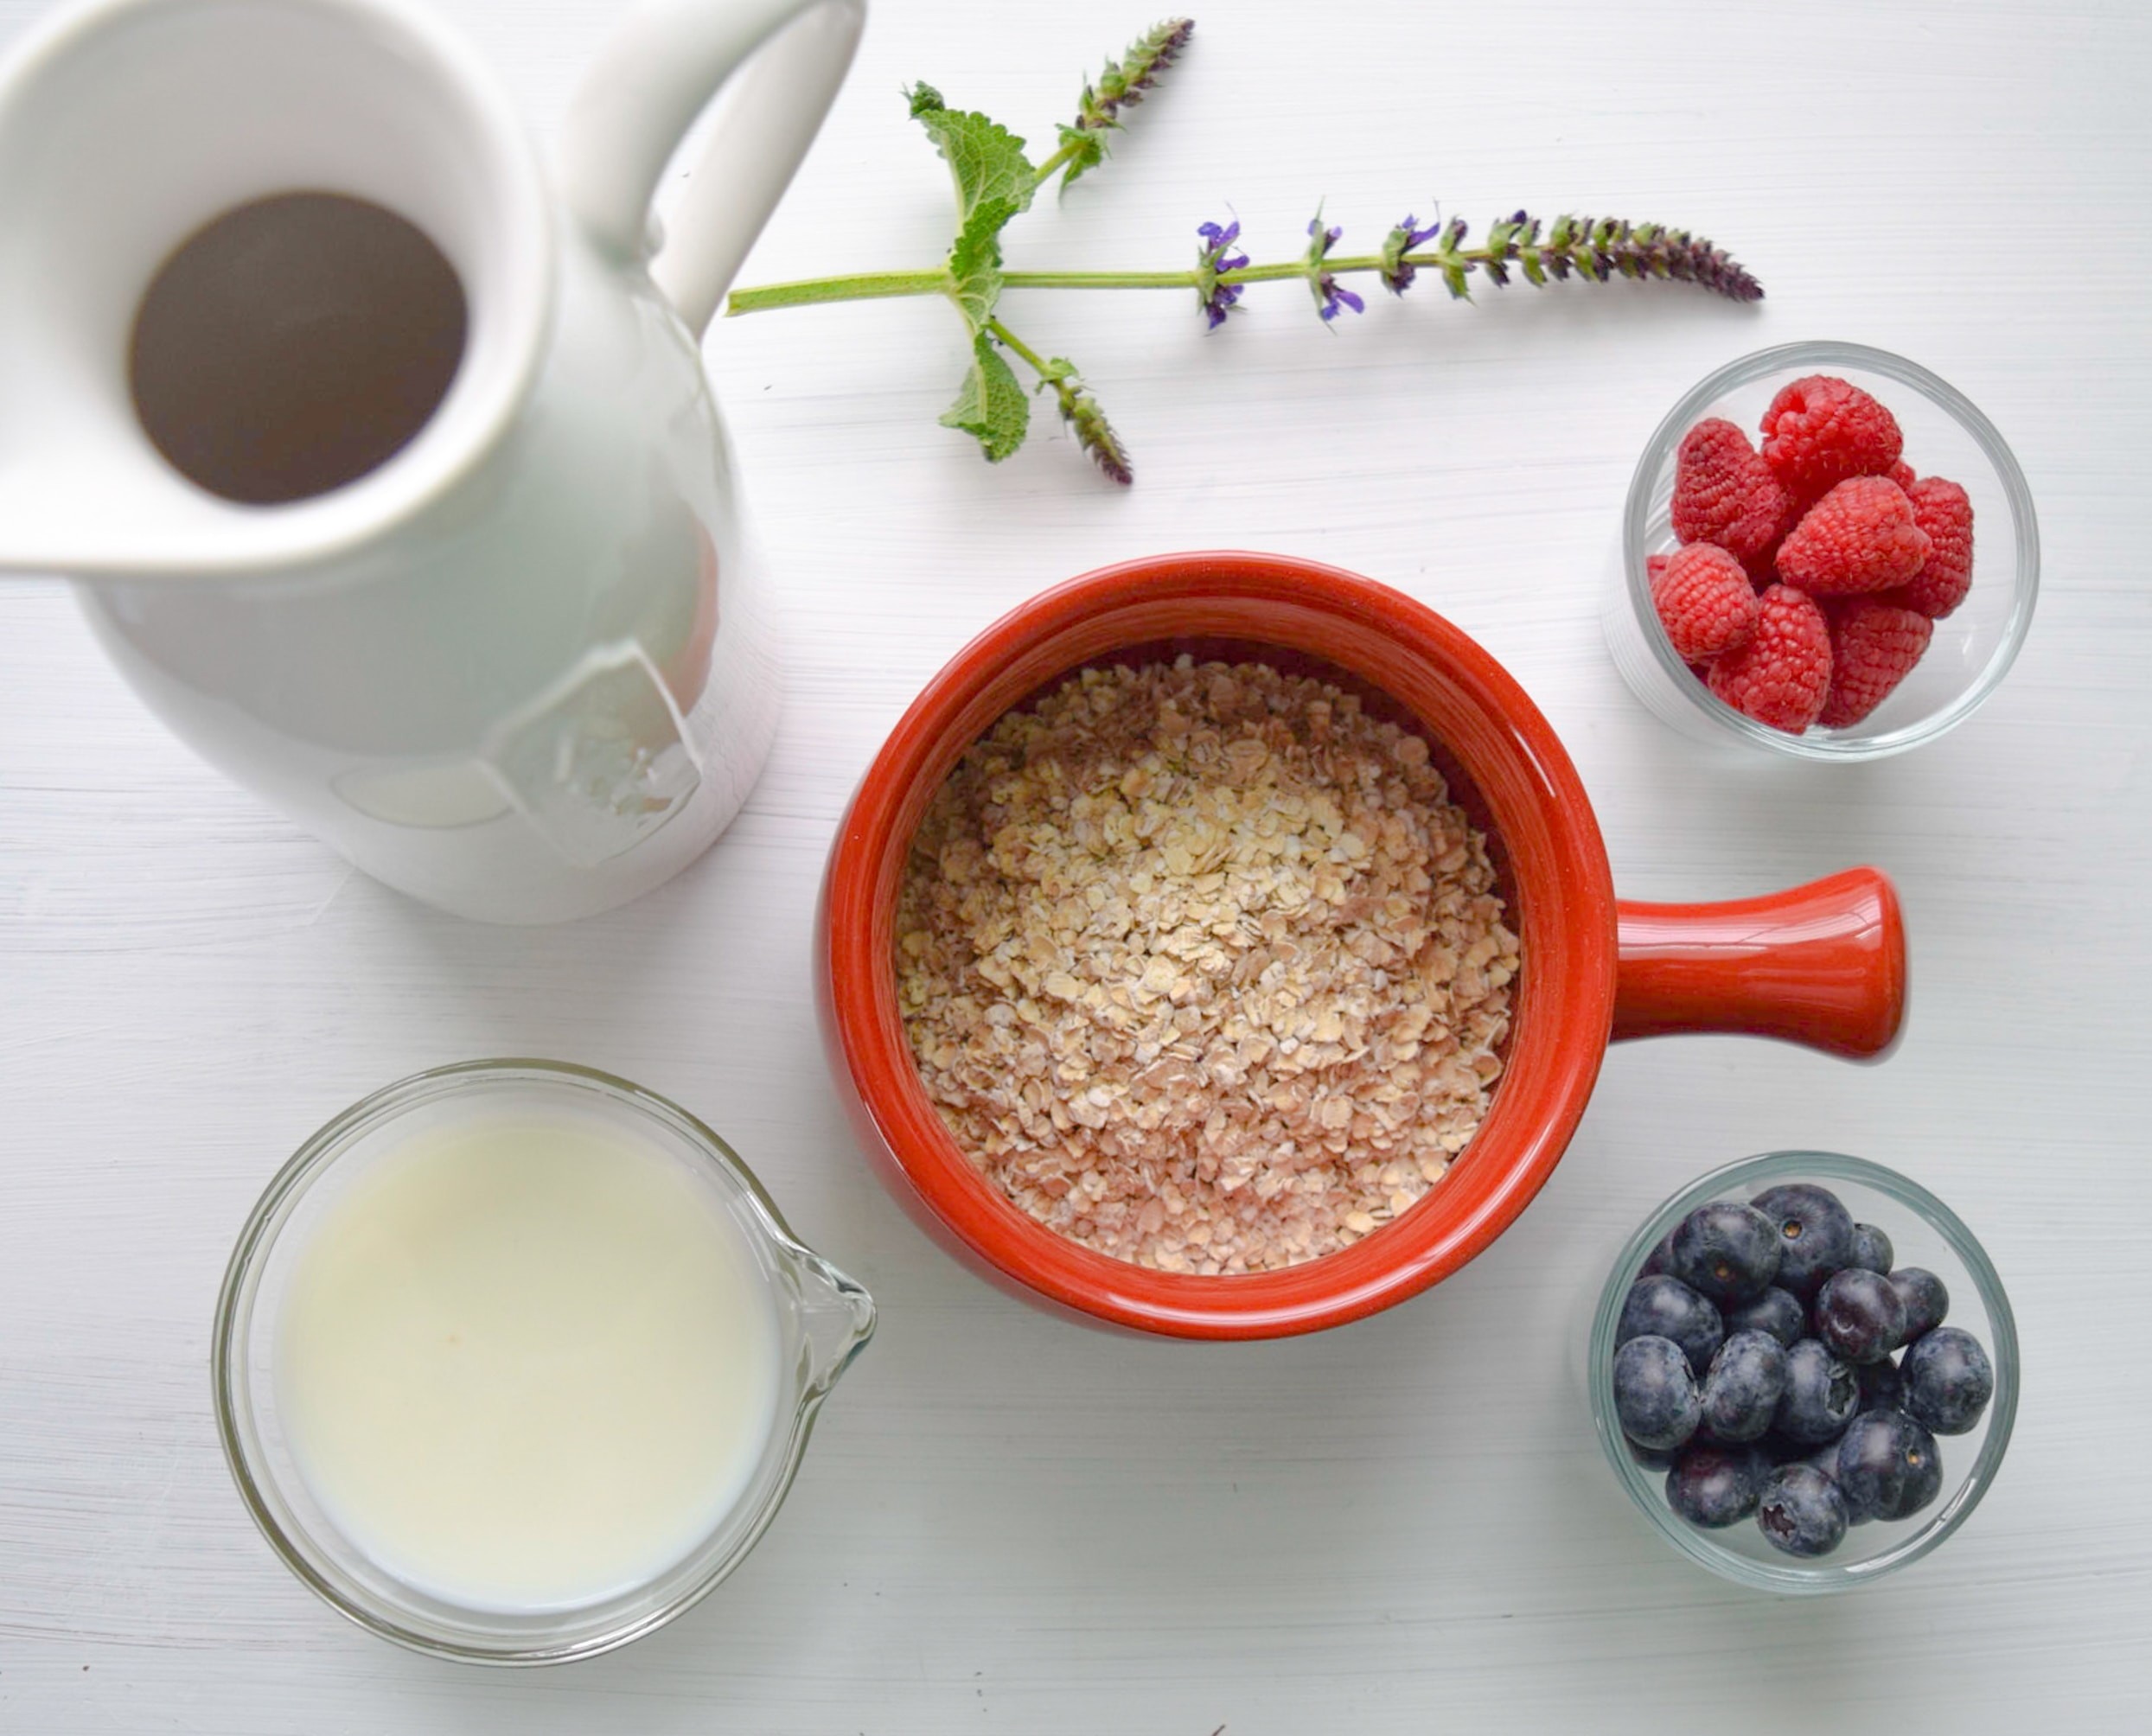 What To Eat For Breakfast When Trying To Lose Weight